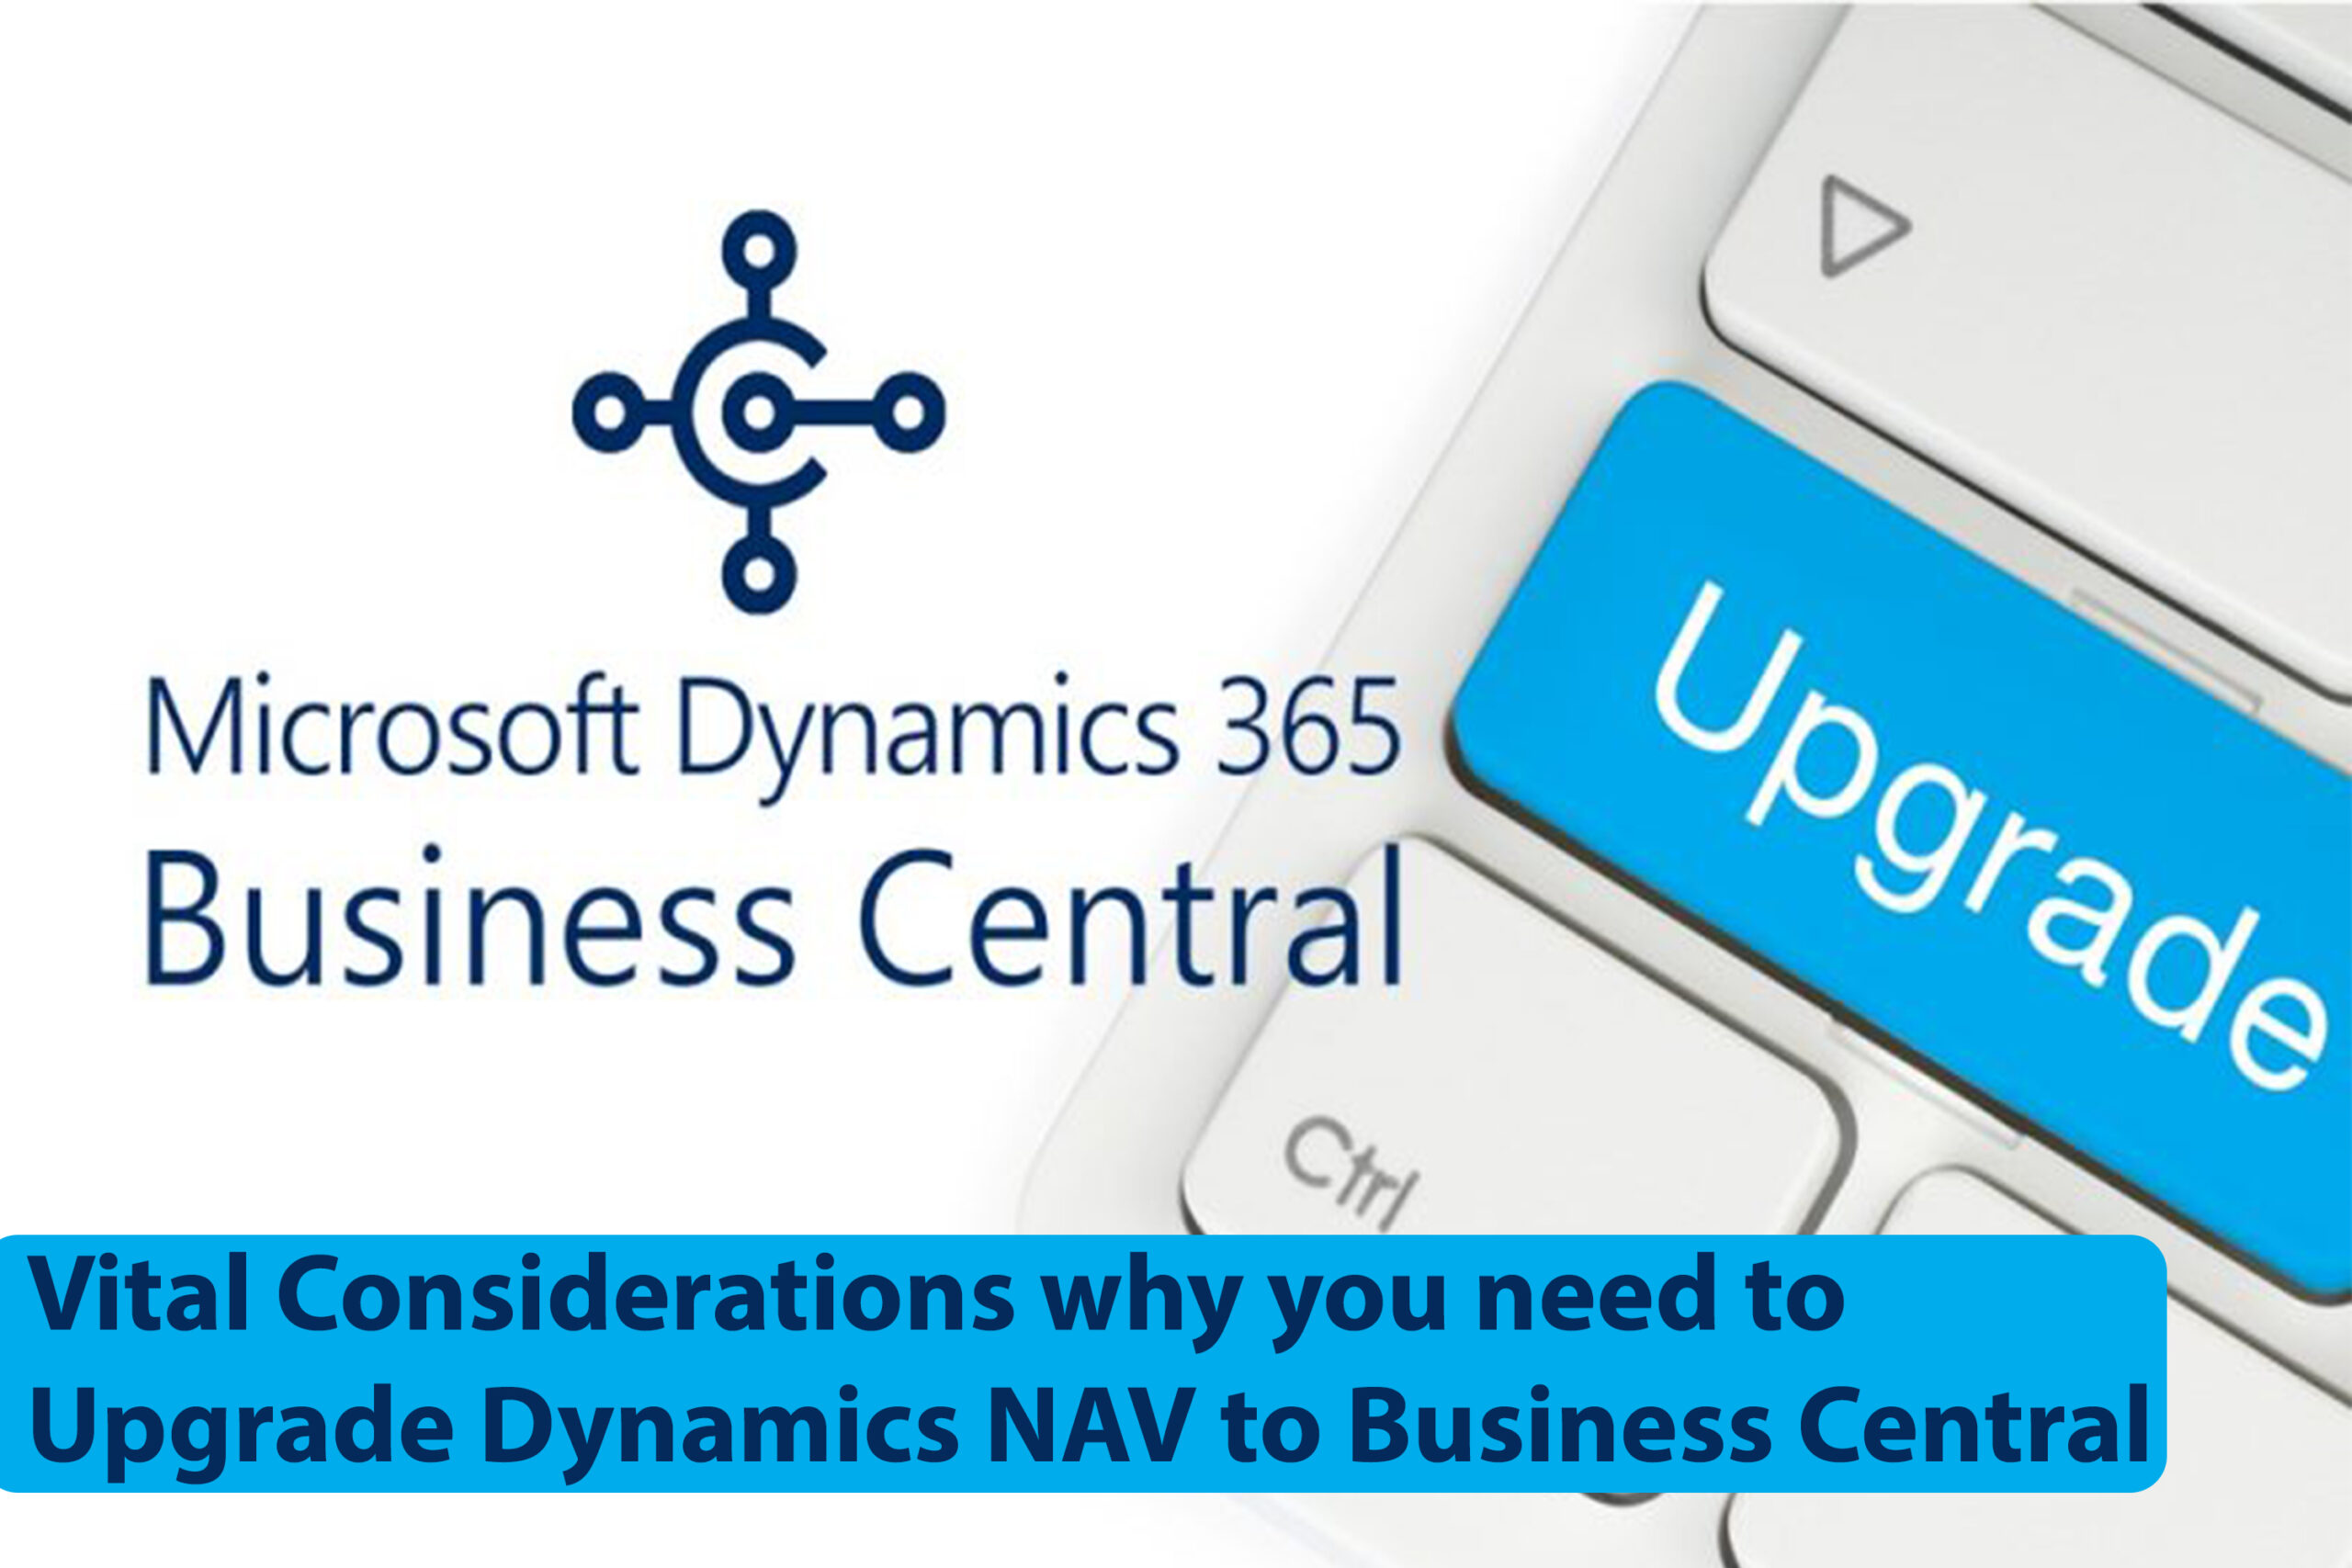 Vital Considerations why you need to Upgrade Dynamics NAV to Business Central.